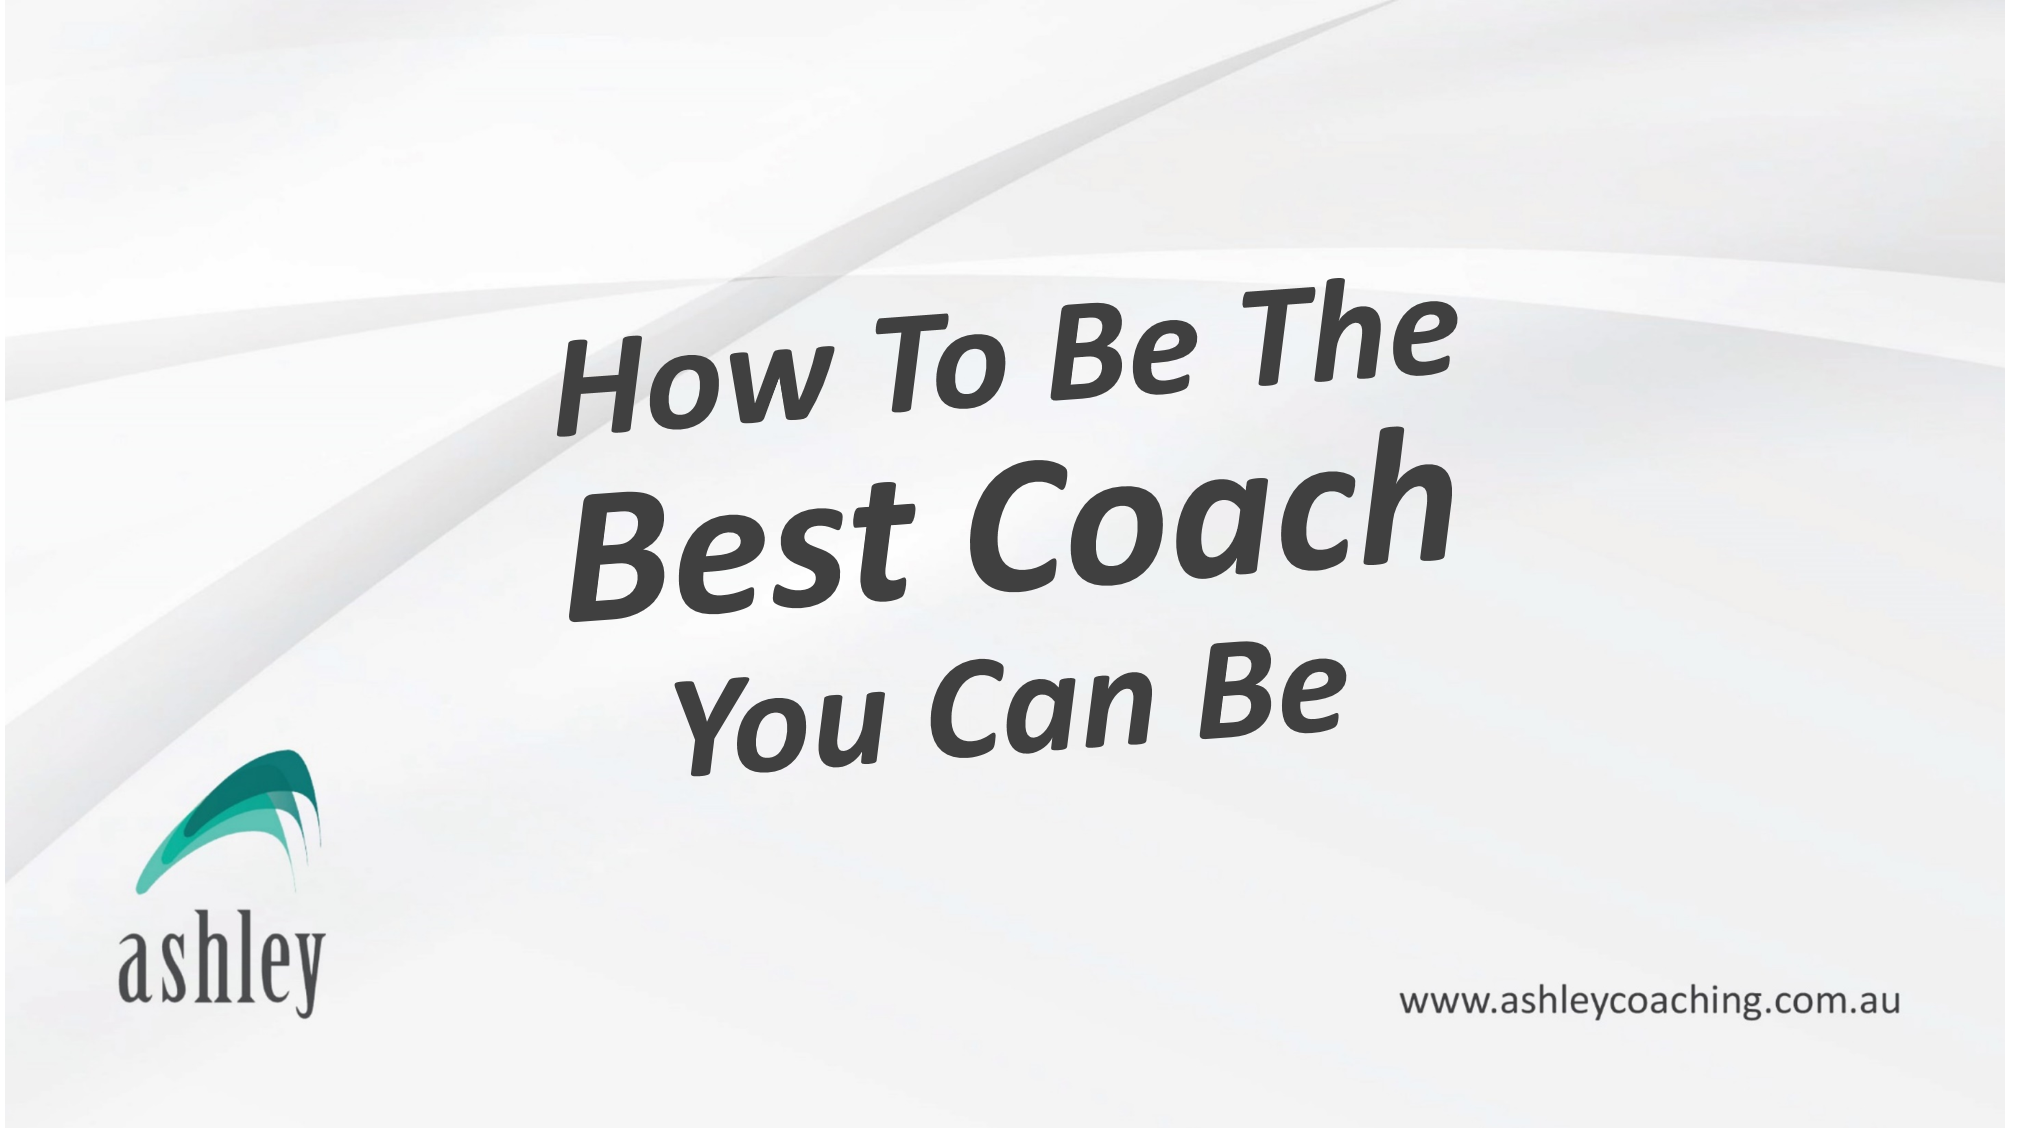 How To Be The Best Coach You Can Be